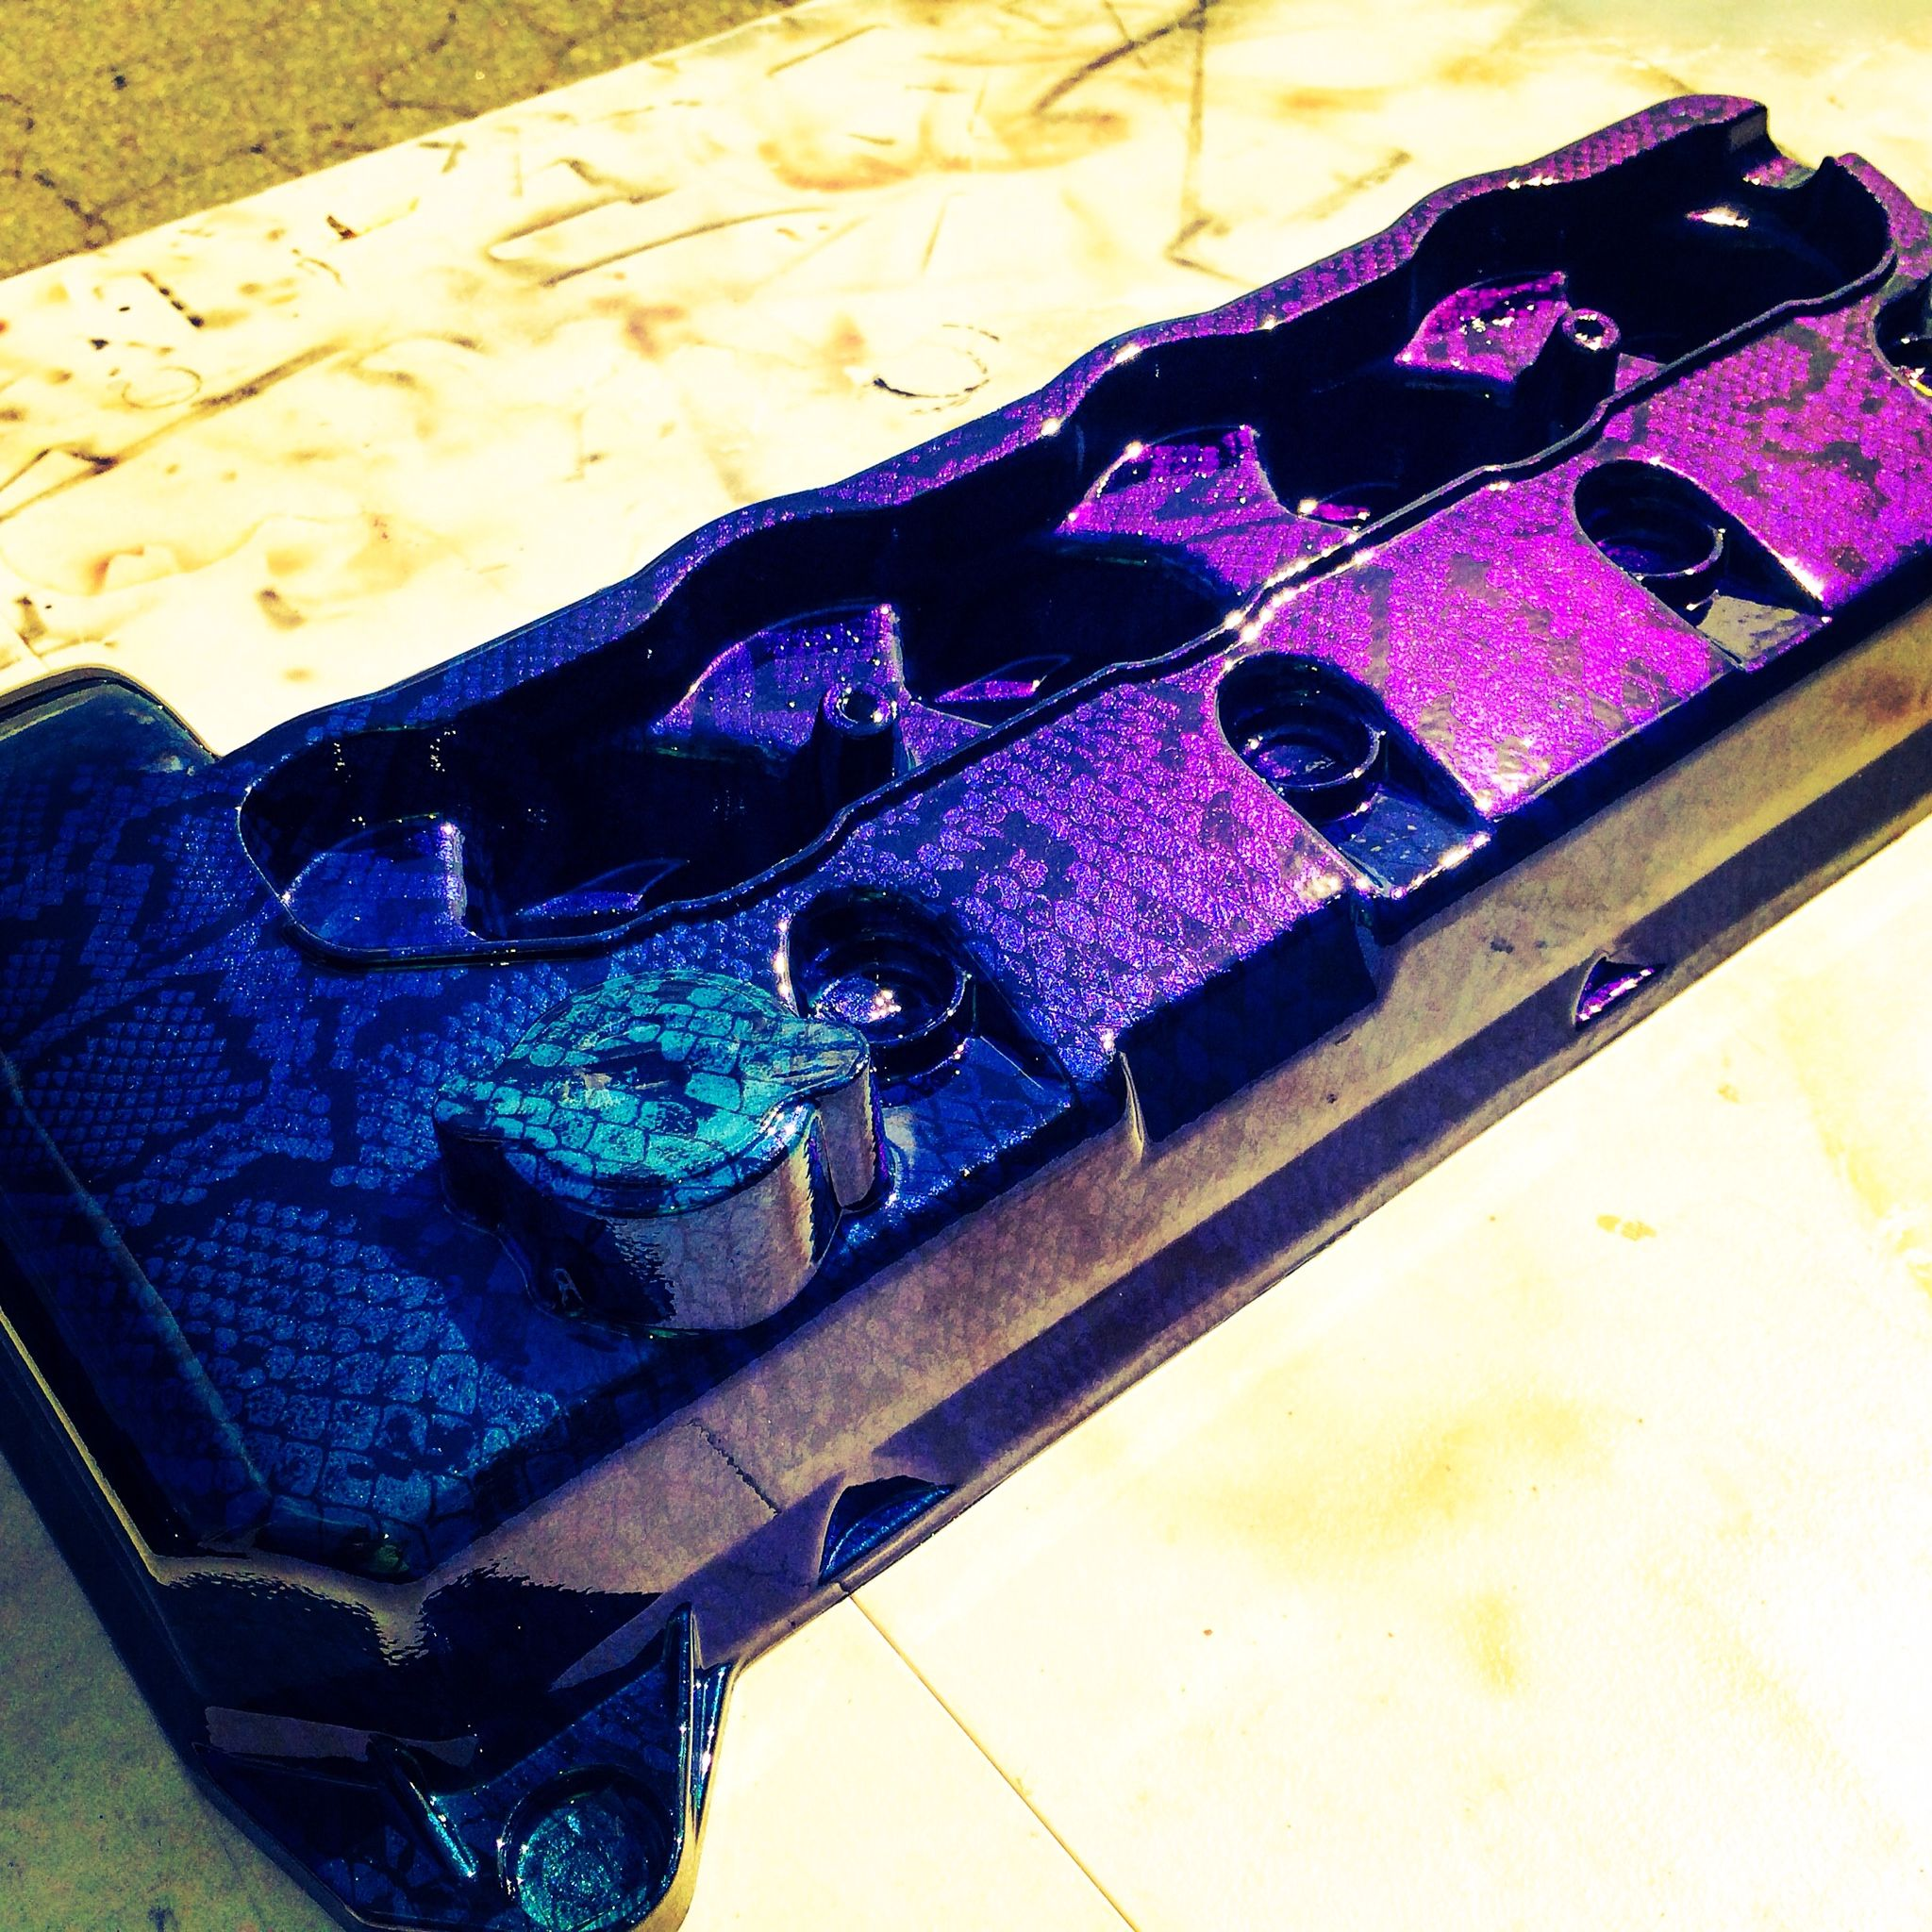 Valve cover hydro dipped and finished with a mistic chrome ...